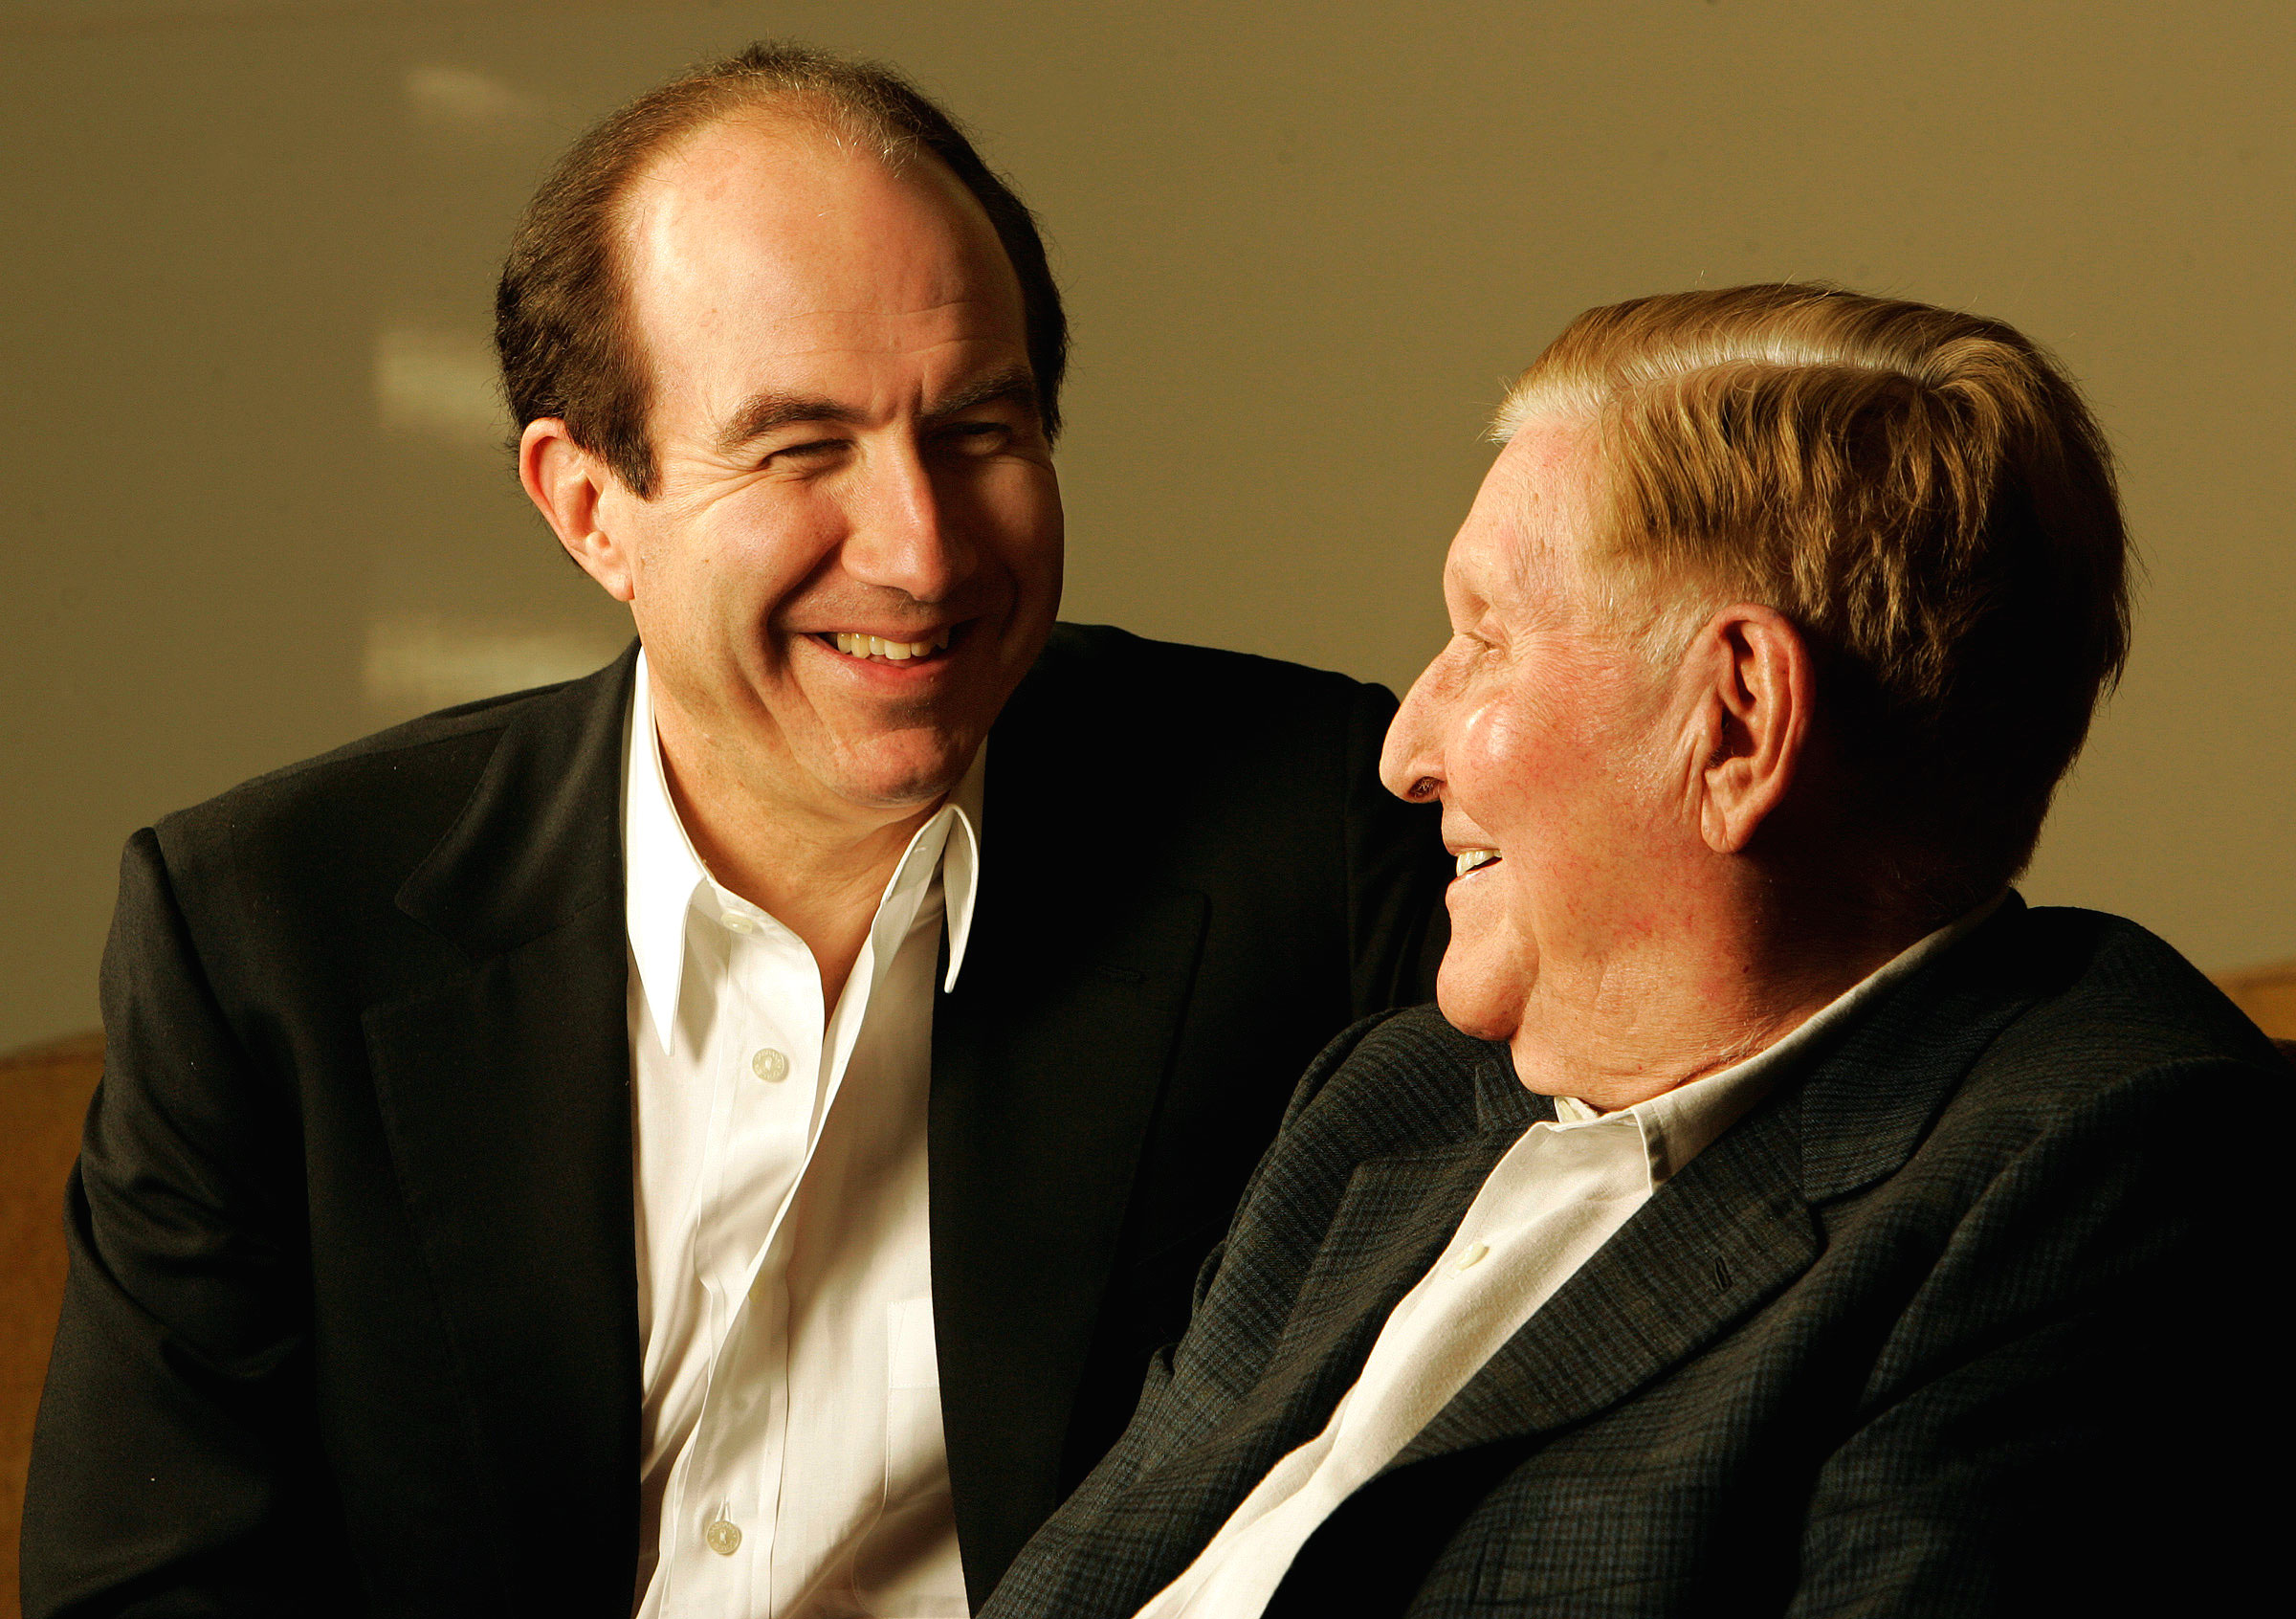 Viacom CEO Philippe Dauman, left, and Viacom Chairman Sumner Redstone photographed at Redstone's ho